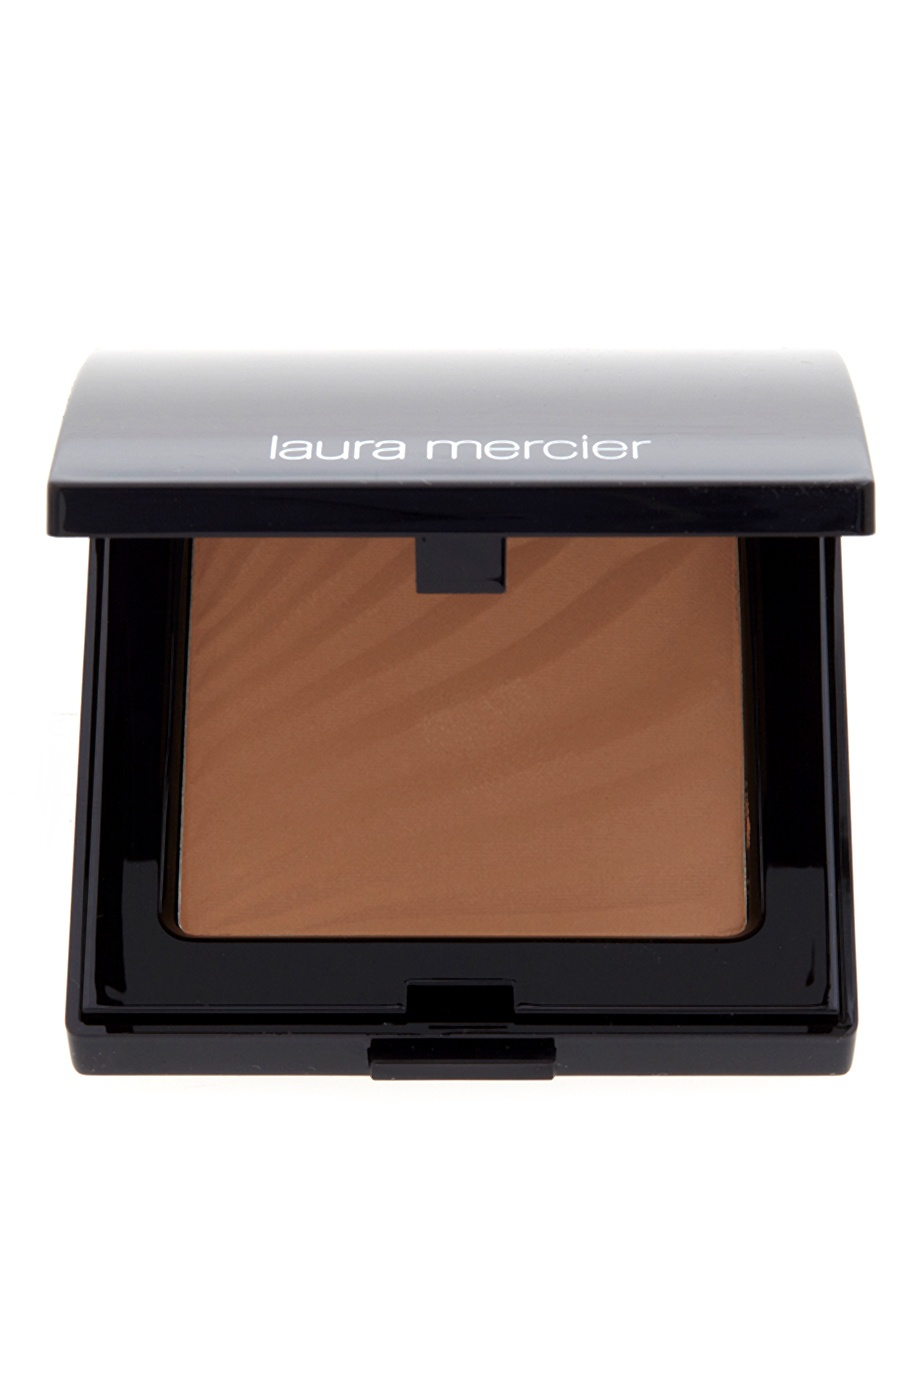 Бронзирующая пудра Bronzing Pressed Powder Laura Mercier (фото)